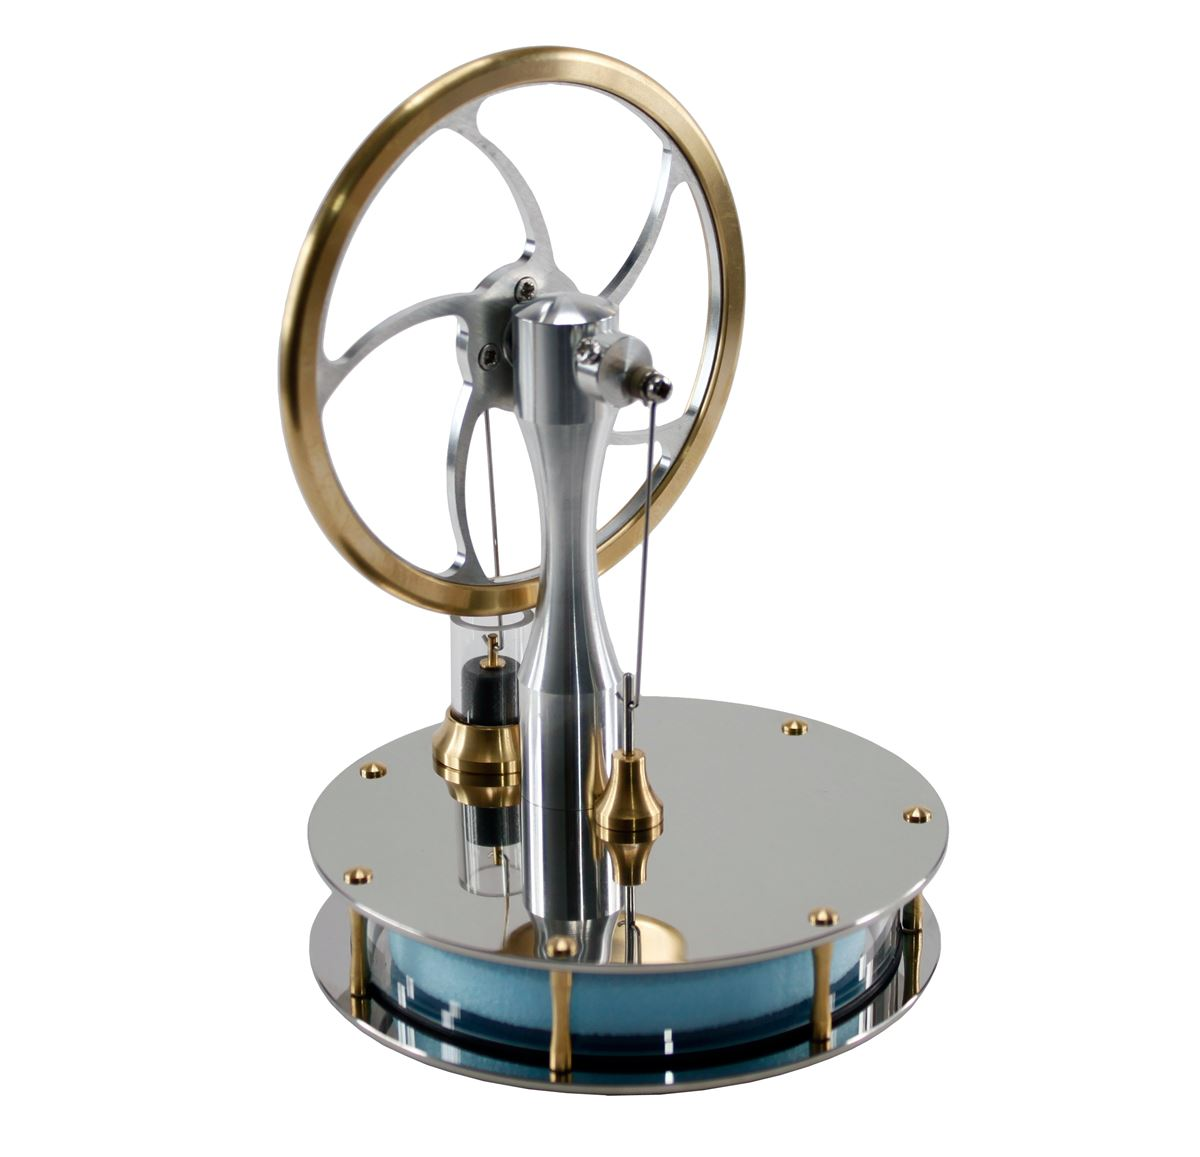 Applications of the Stirling engine